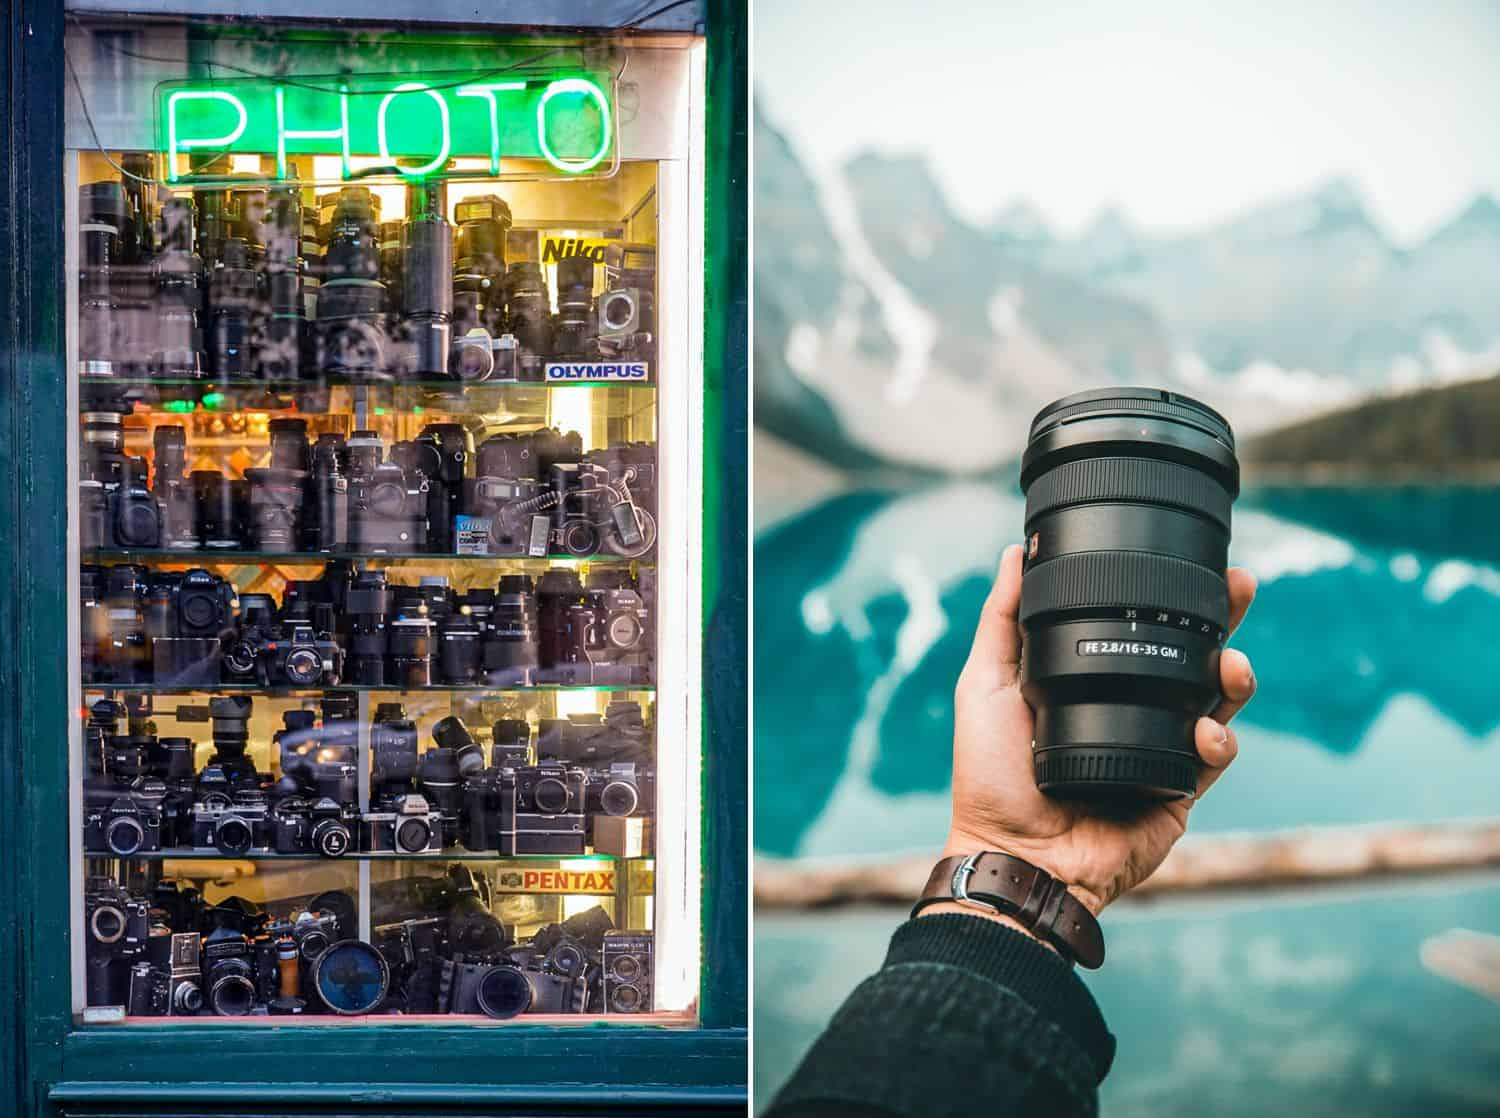 A store window filled with camera lenses. A hand holding a lens in front of a lake.